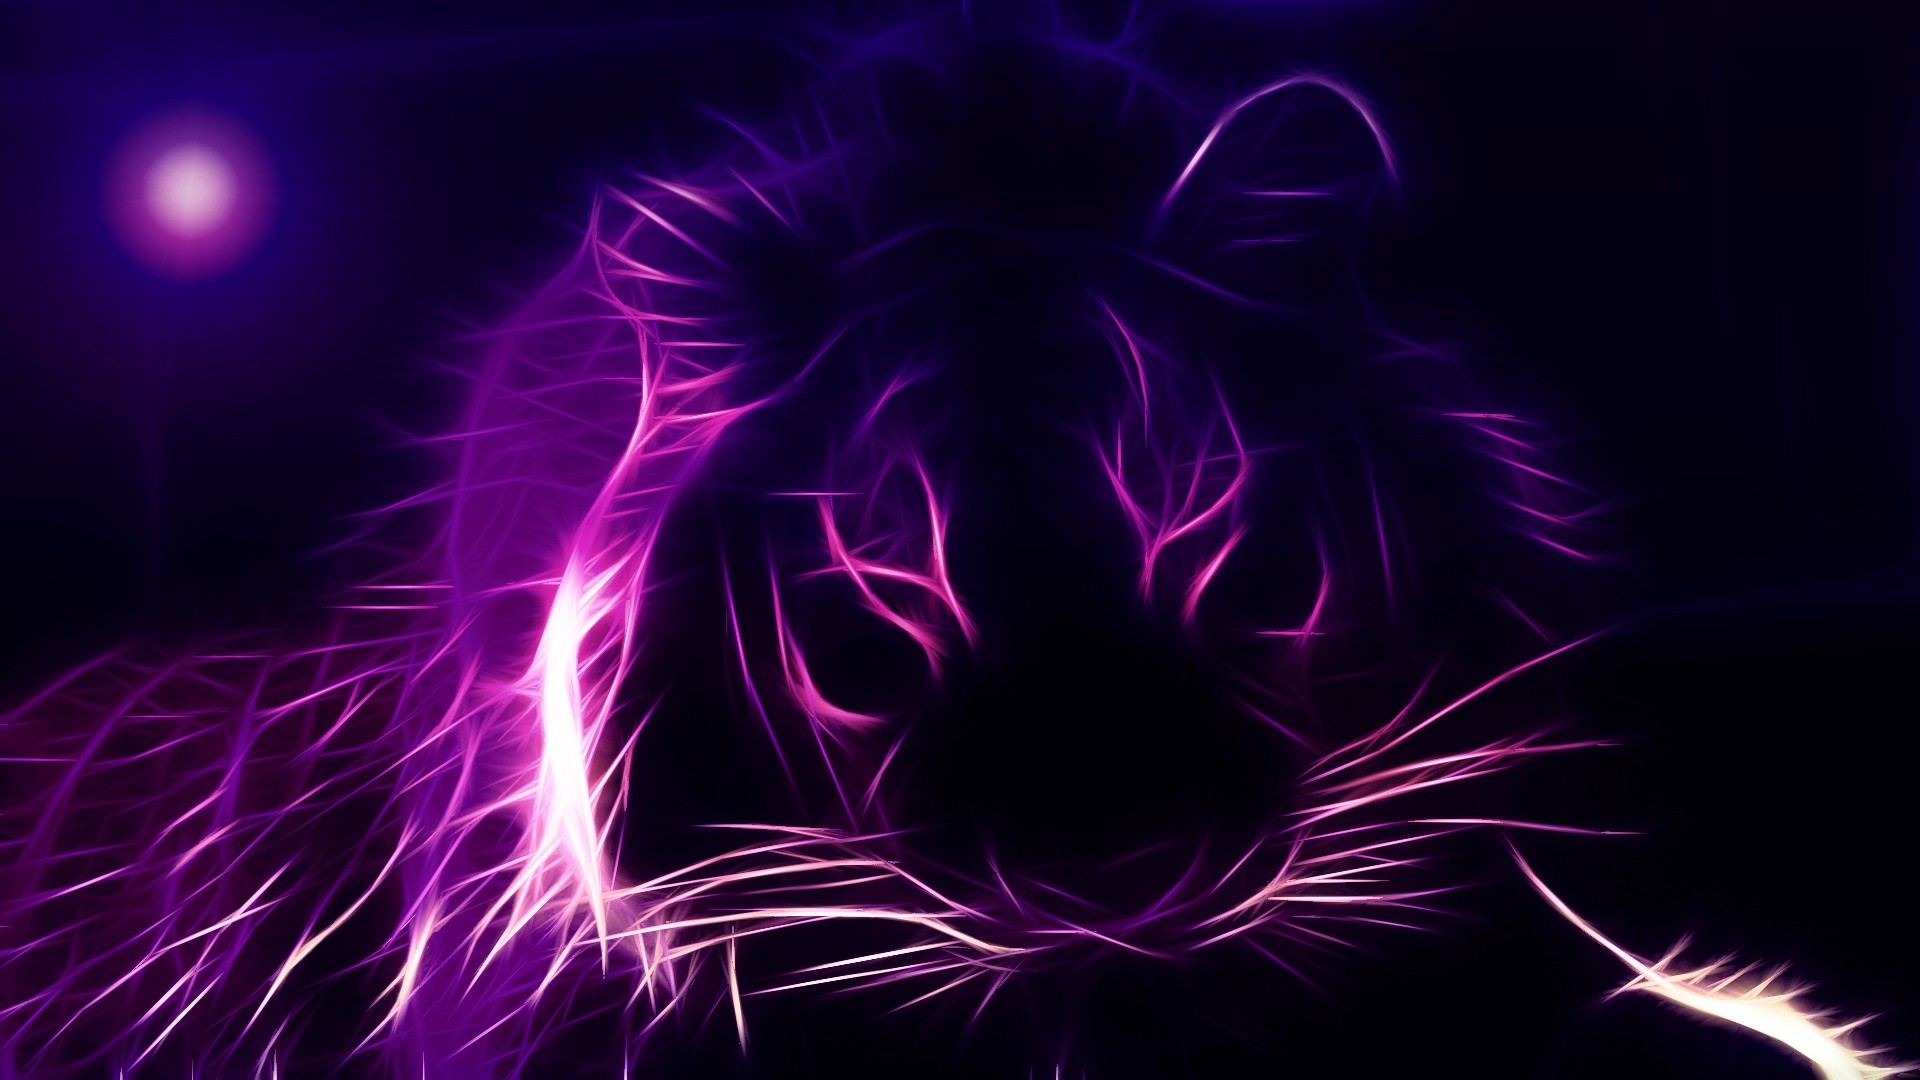 1920x1080 Purple Wallpaper Abstract HD